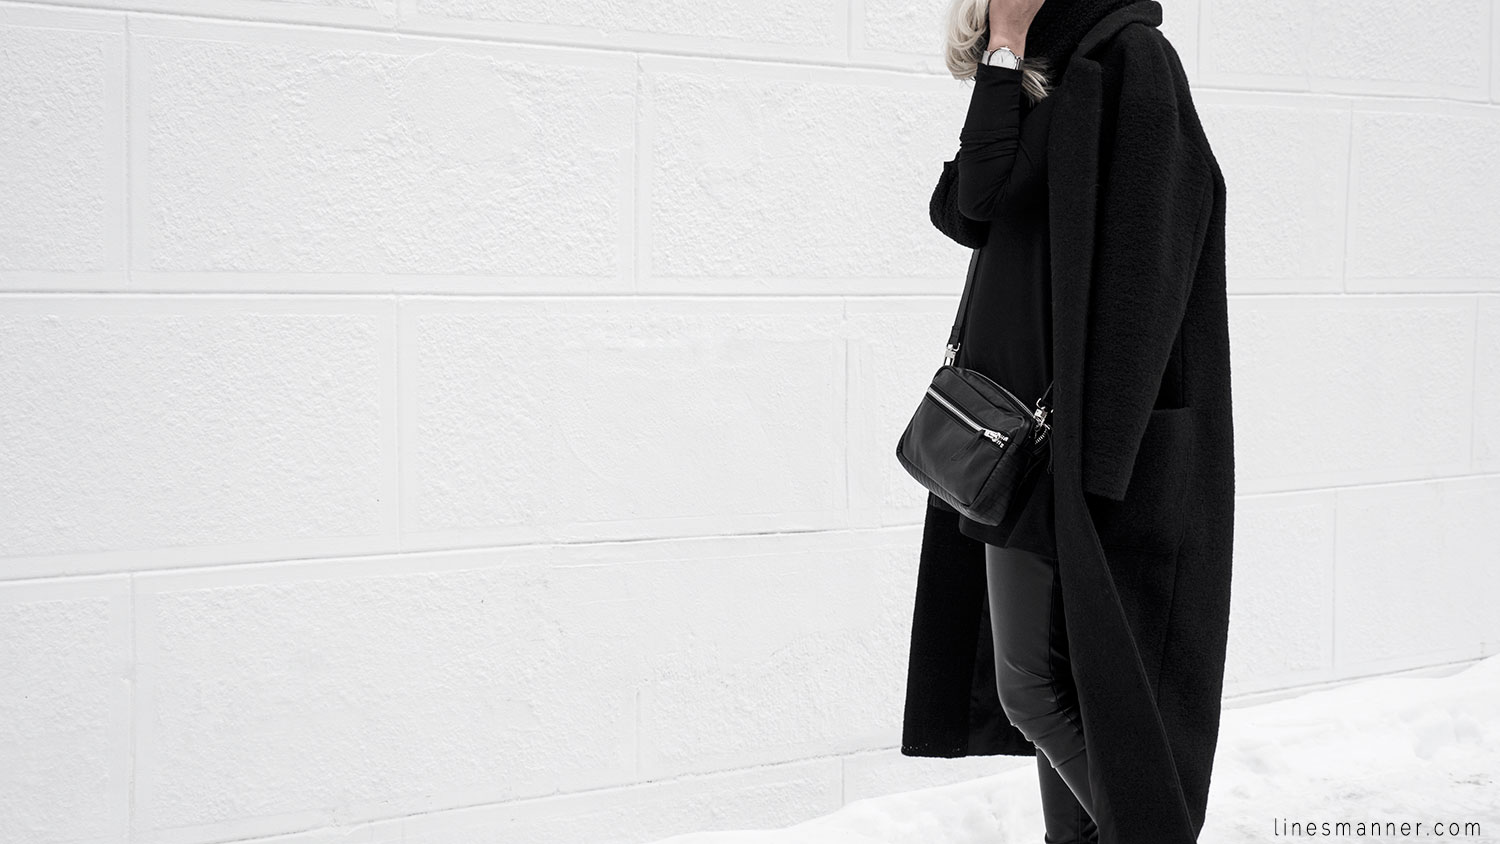 Lines-Manner-All_black_everything-monochrome-essentials-oversize-fit-textures-minimal-details-basics-staples-kayering-bundled-enveloped-silver-leather-21